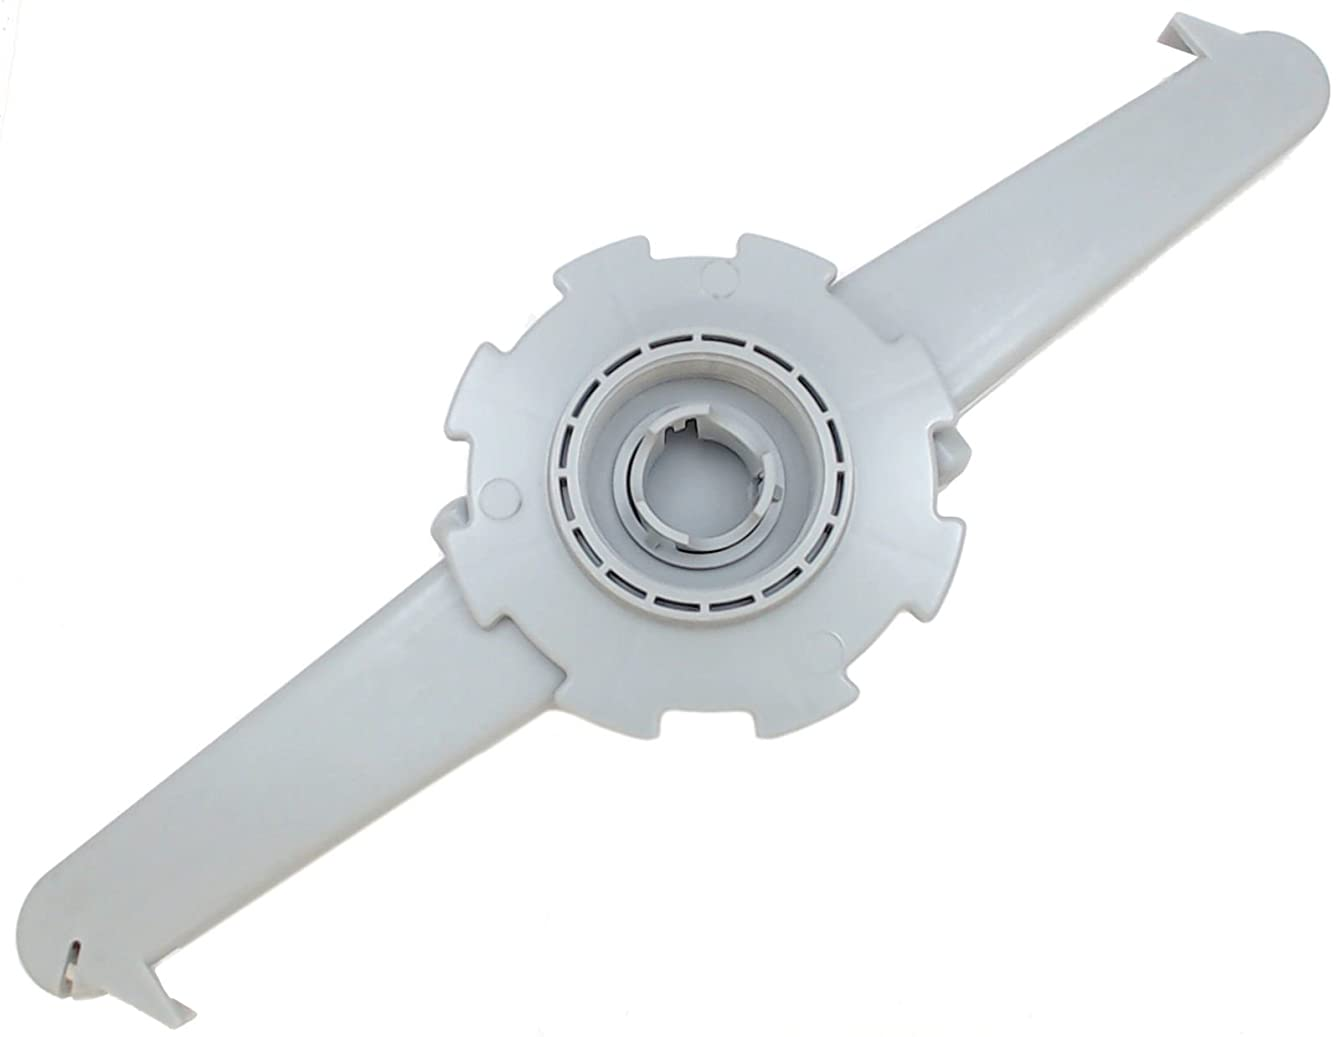 Ximoon 154754502 Dishwasher Upper Spray Arm Replacement for Frigidaire AP3965251, PS1524878, AP6036336, PS11770483